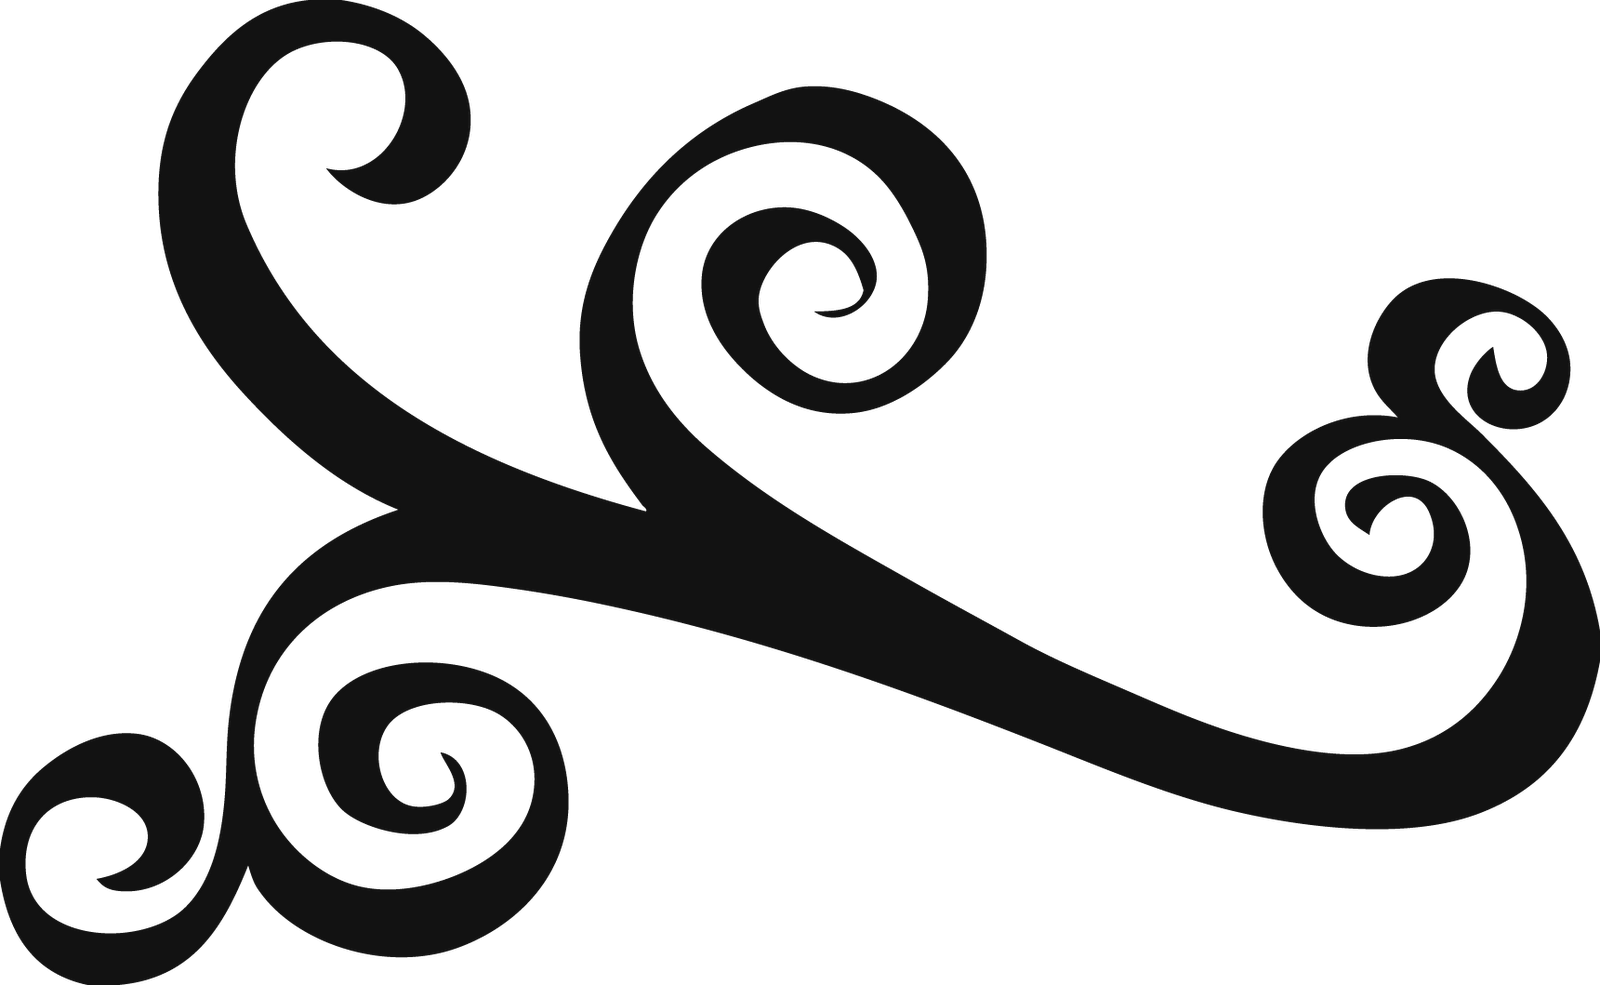 svg swirls filigree